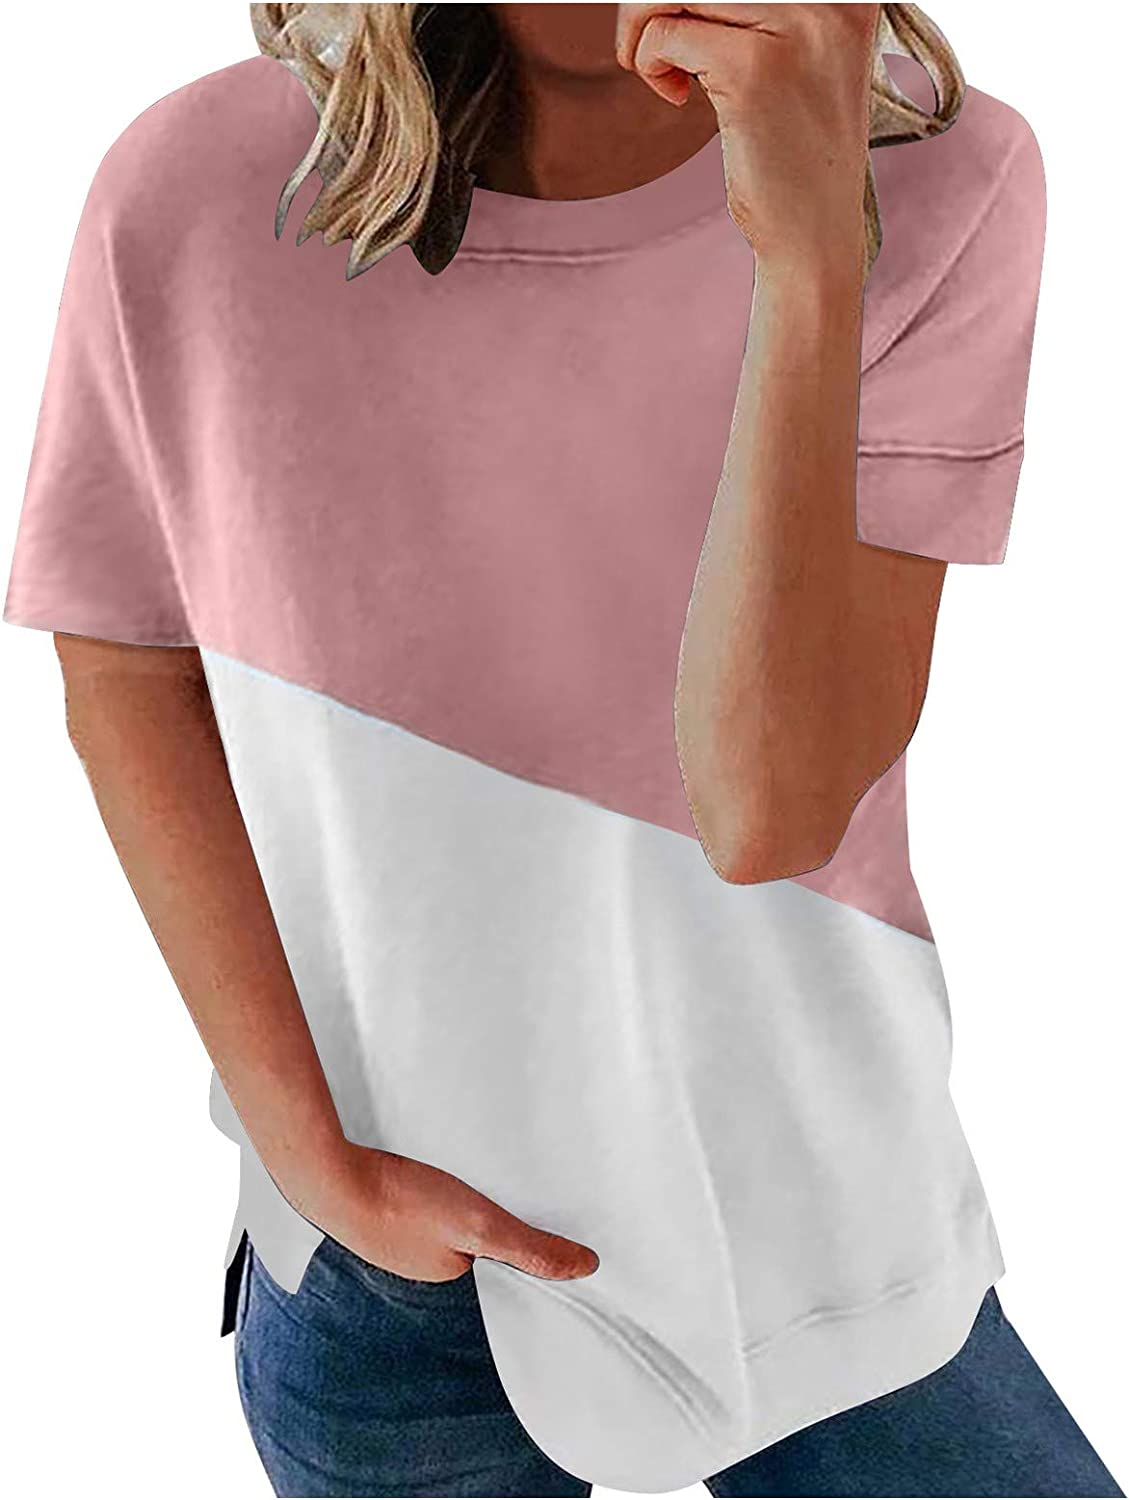 AODONG T Shirts for Women Trendy Short Sleeve Tops Summer Color Block Blouses Crewneck Comfy Pullover Shirts Tunics